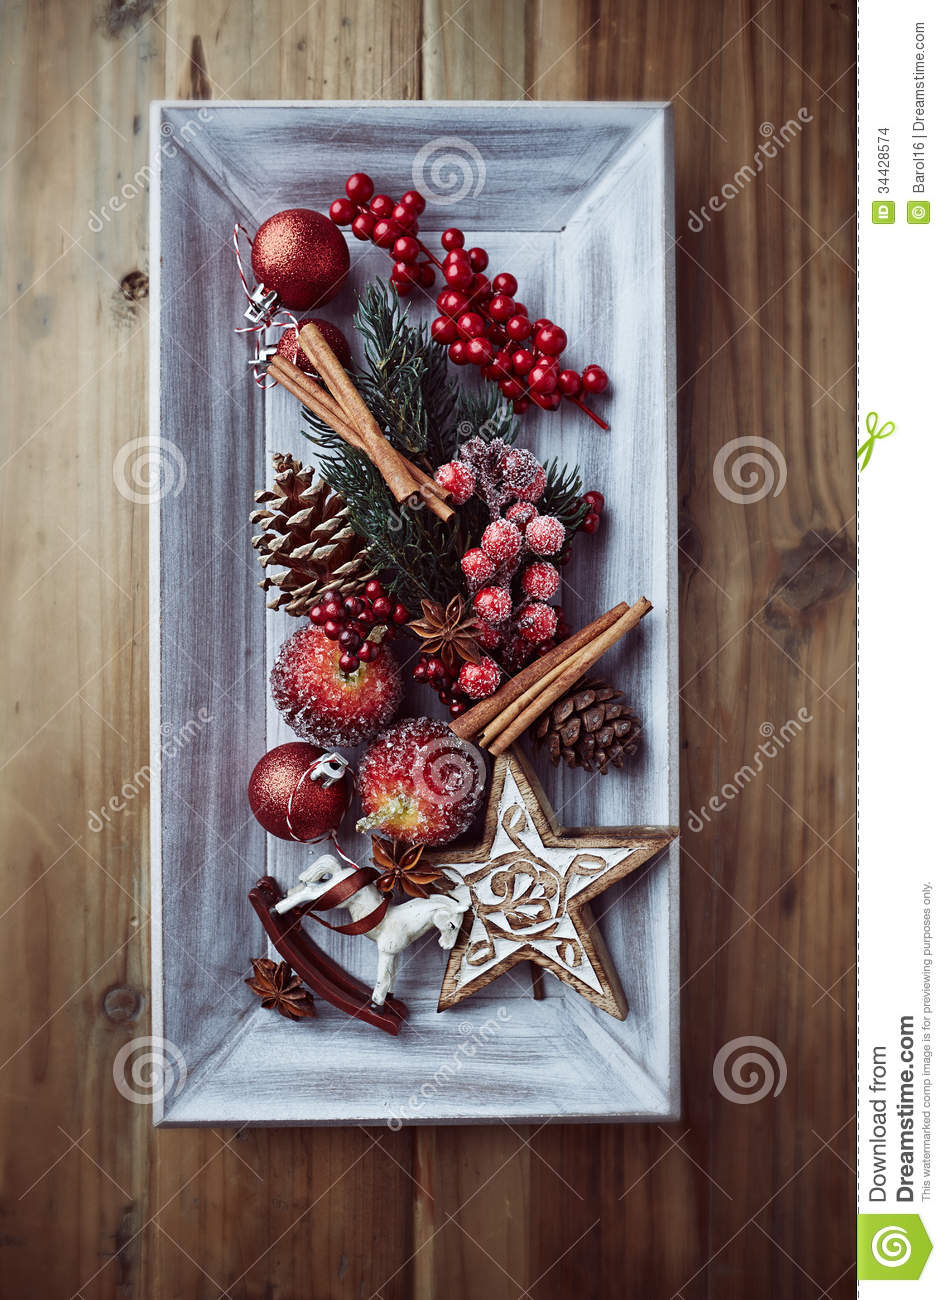 rustic christmas decorations on a wooden tray stock images